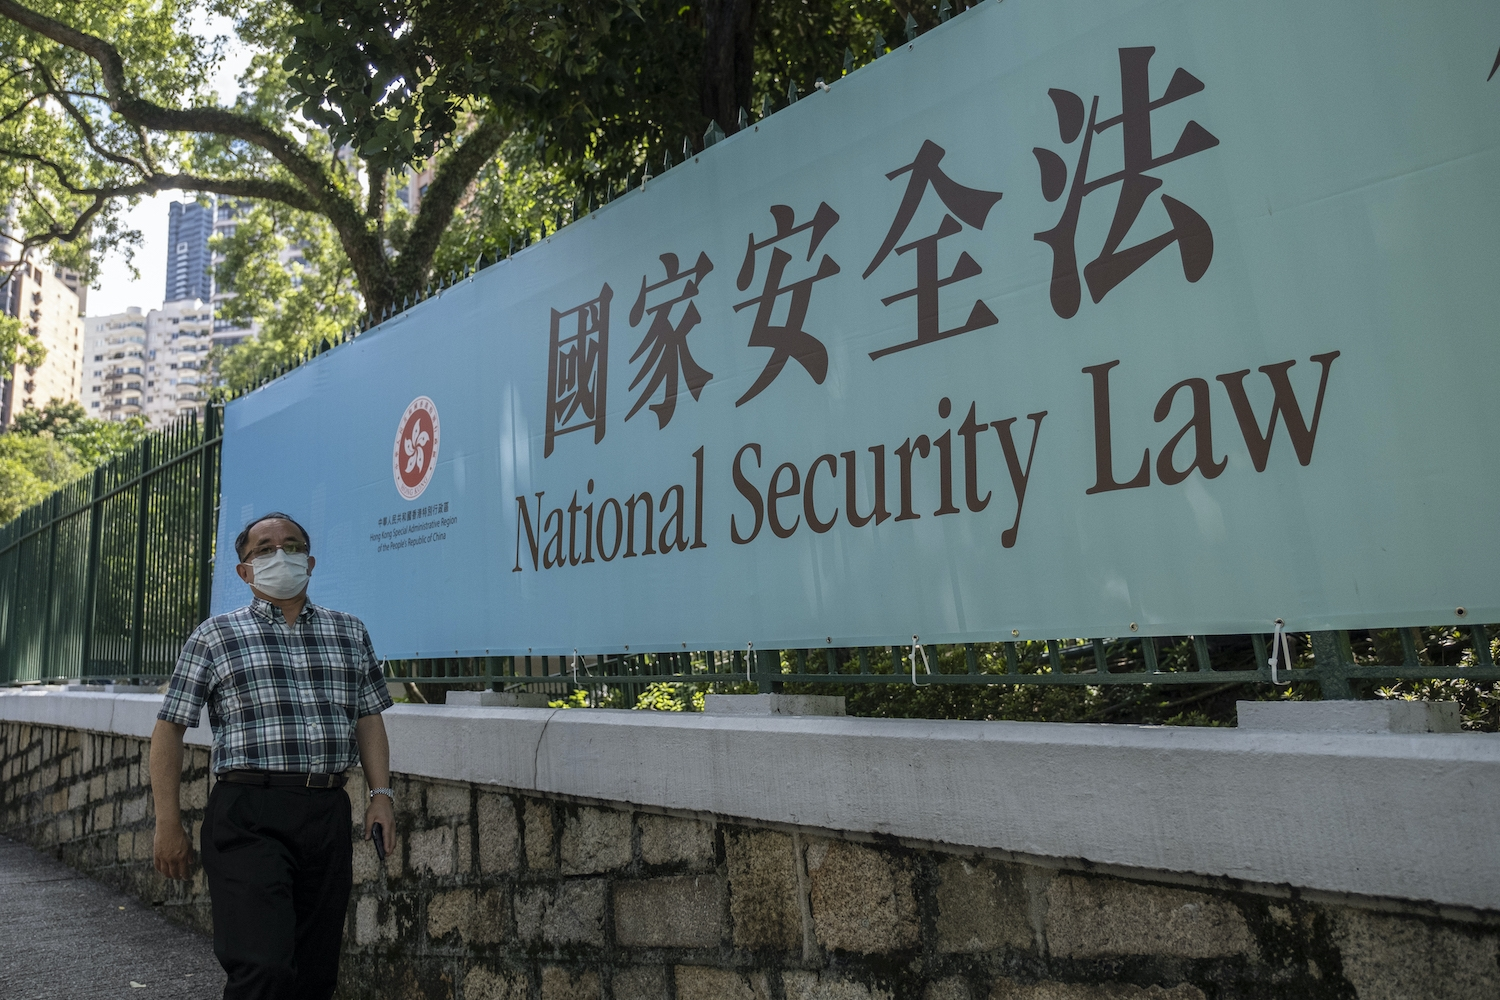 The proposed national security law would allow Beijing to override Hong Kong's independent legal system